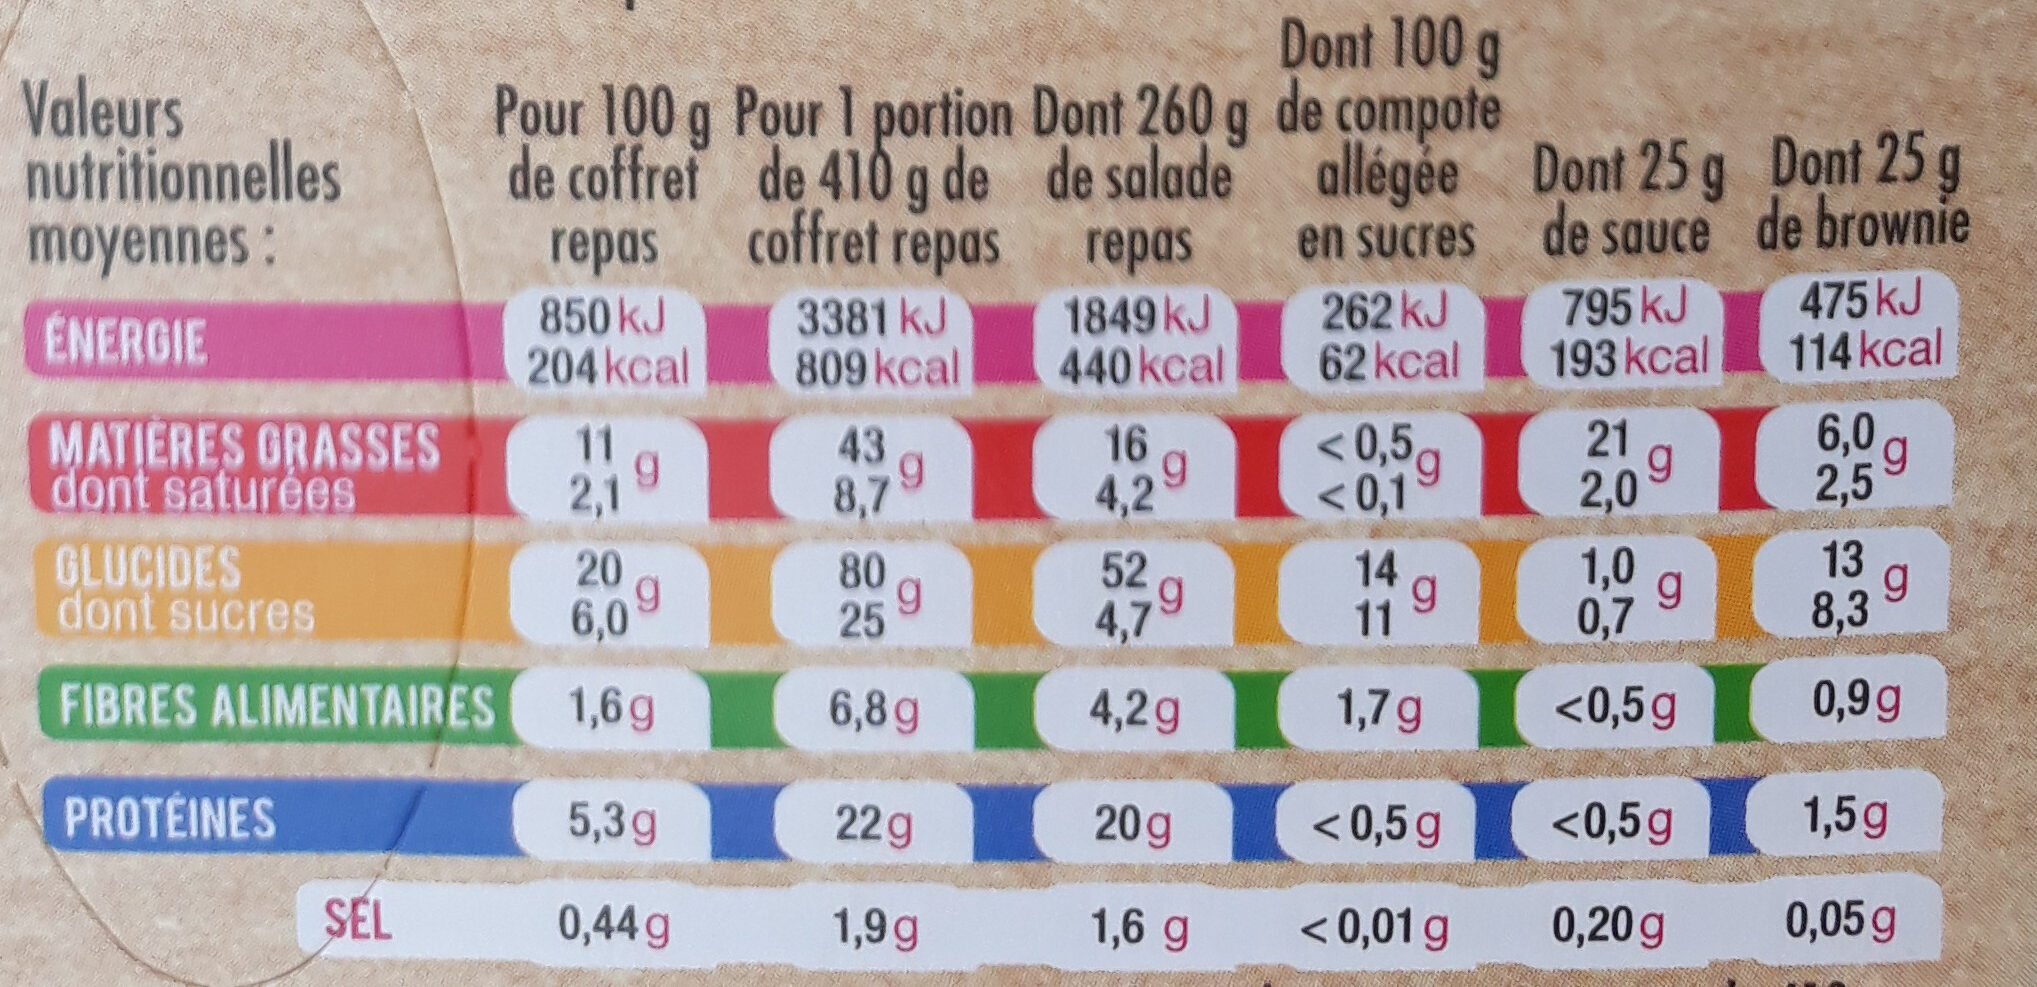 Salade extra coffret jambon speck - Informations nutritionnelles - fr